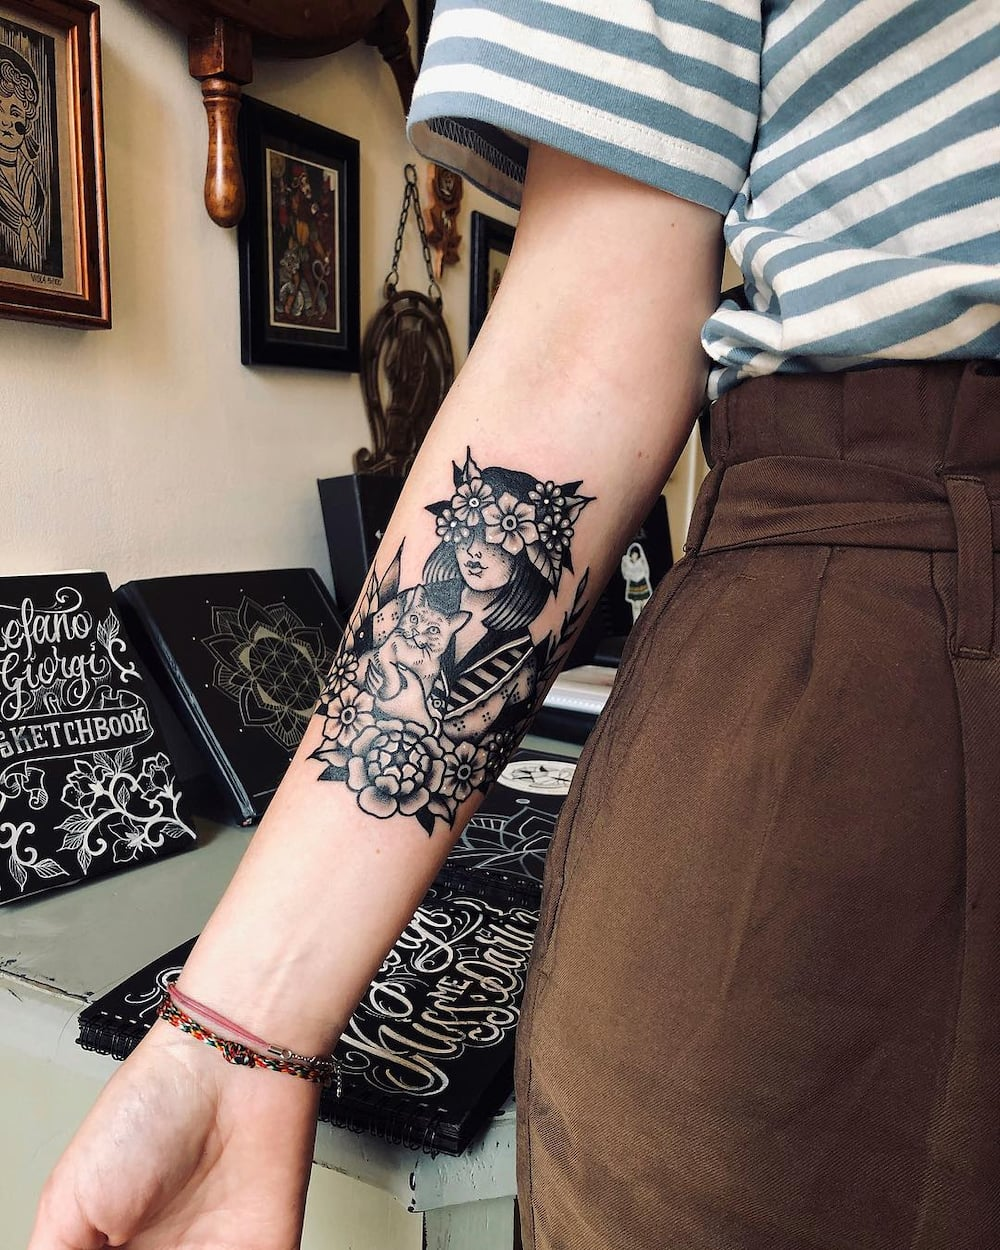 a23c6a484 50 cool arm tattoos design ideas for men and women ▷ Legit.ng